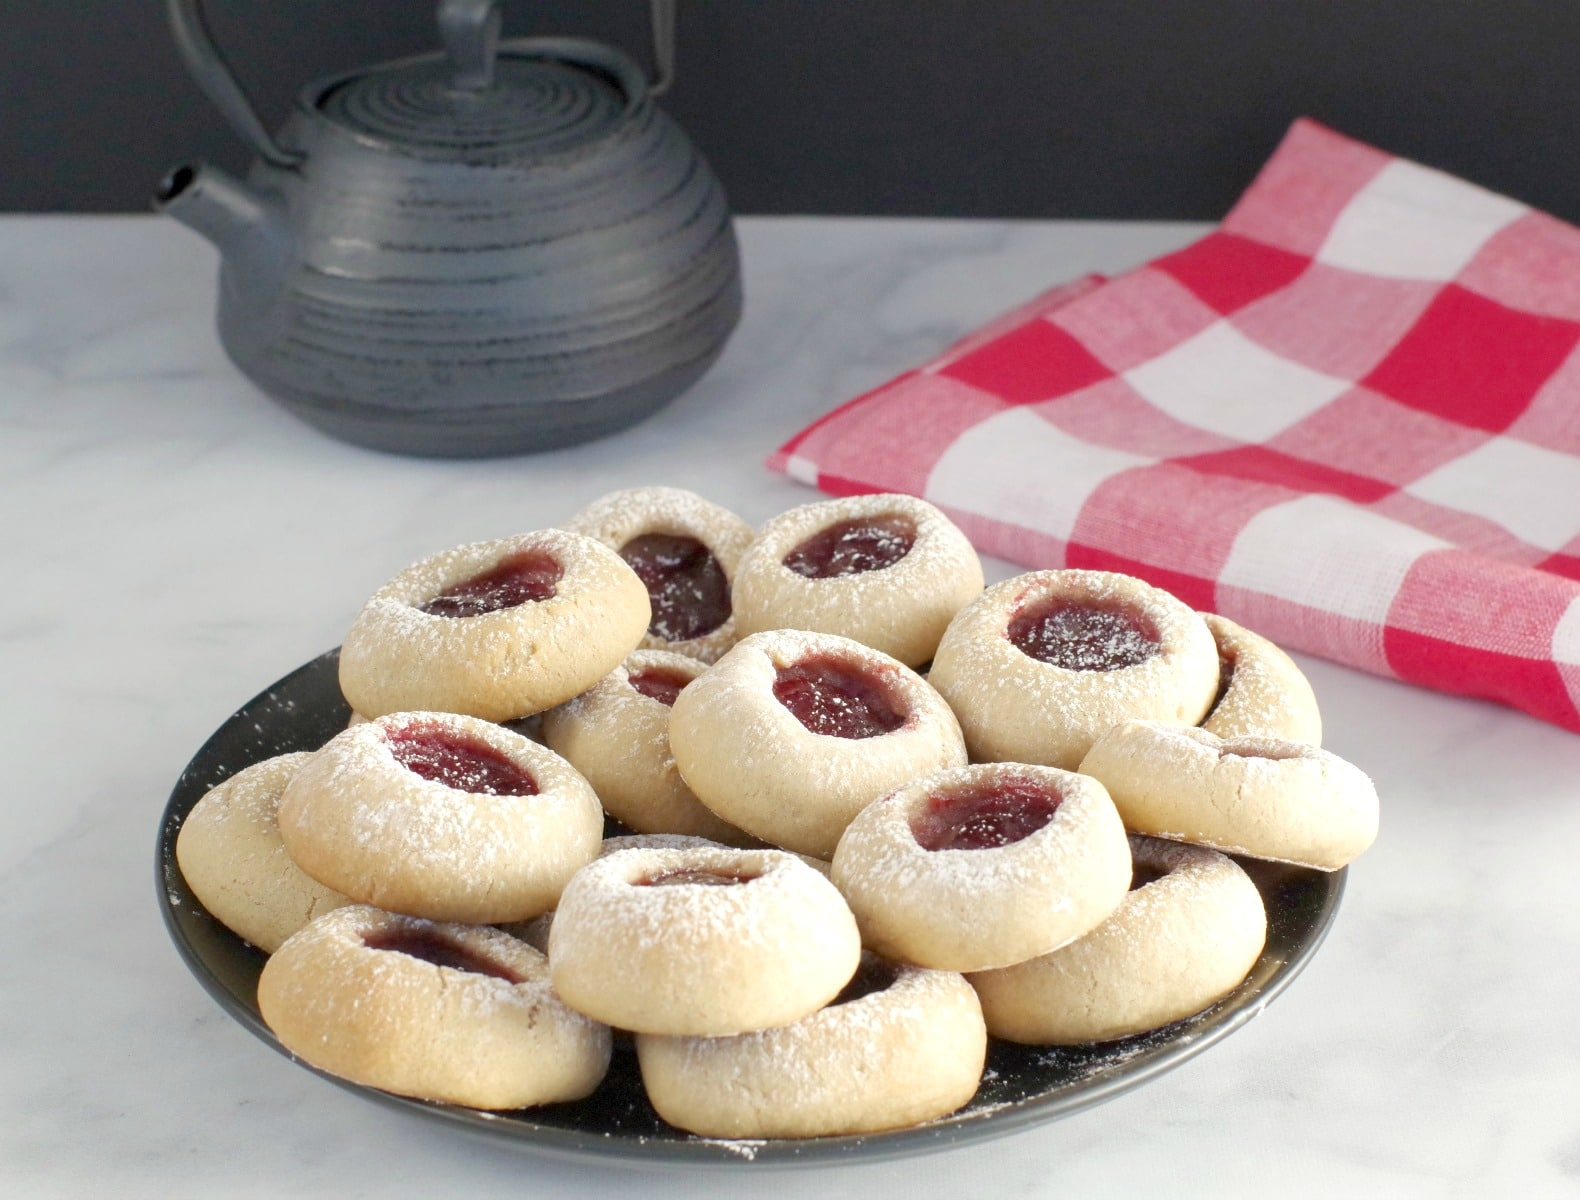 raspberry jam thumbprint cookies on a black plate with black tea pot and red checkered tea towel in the background